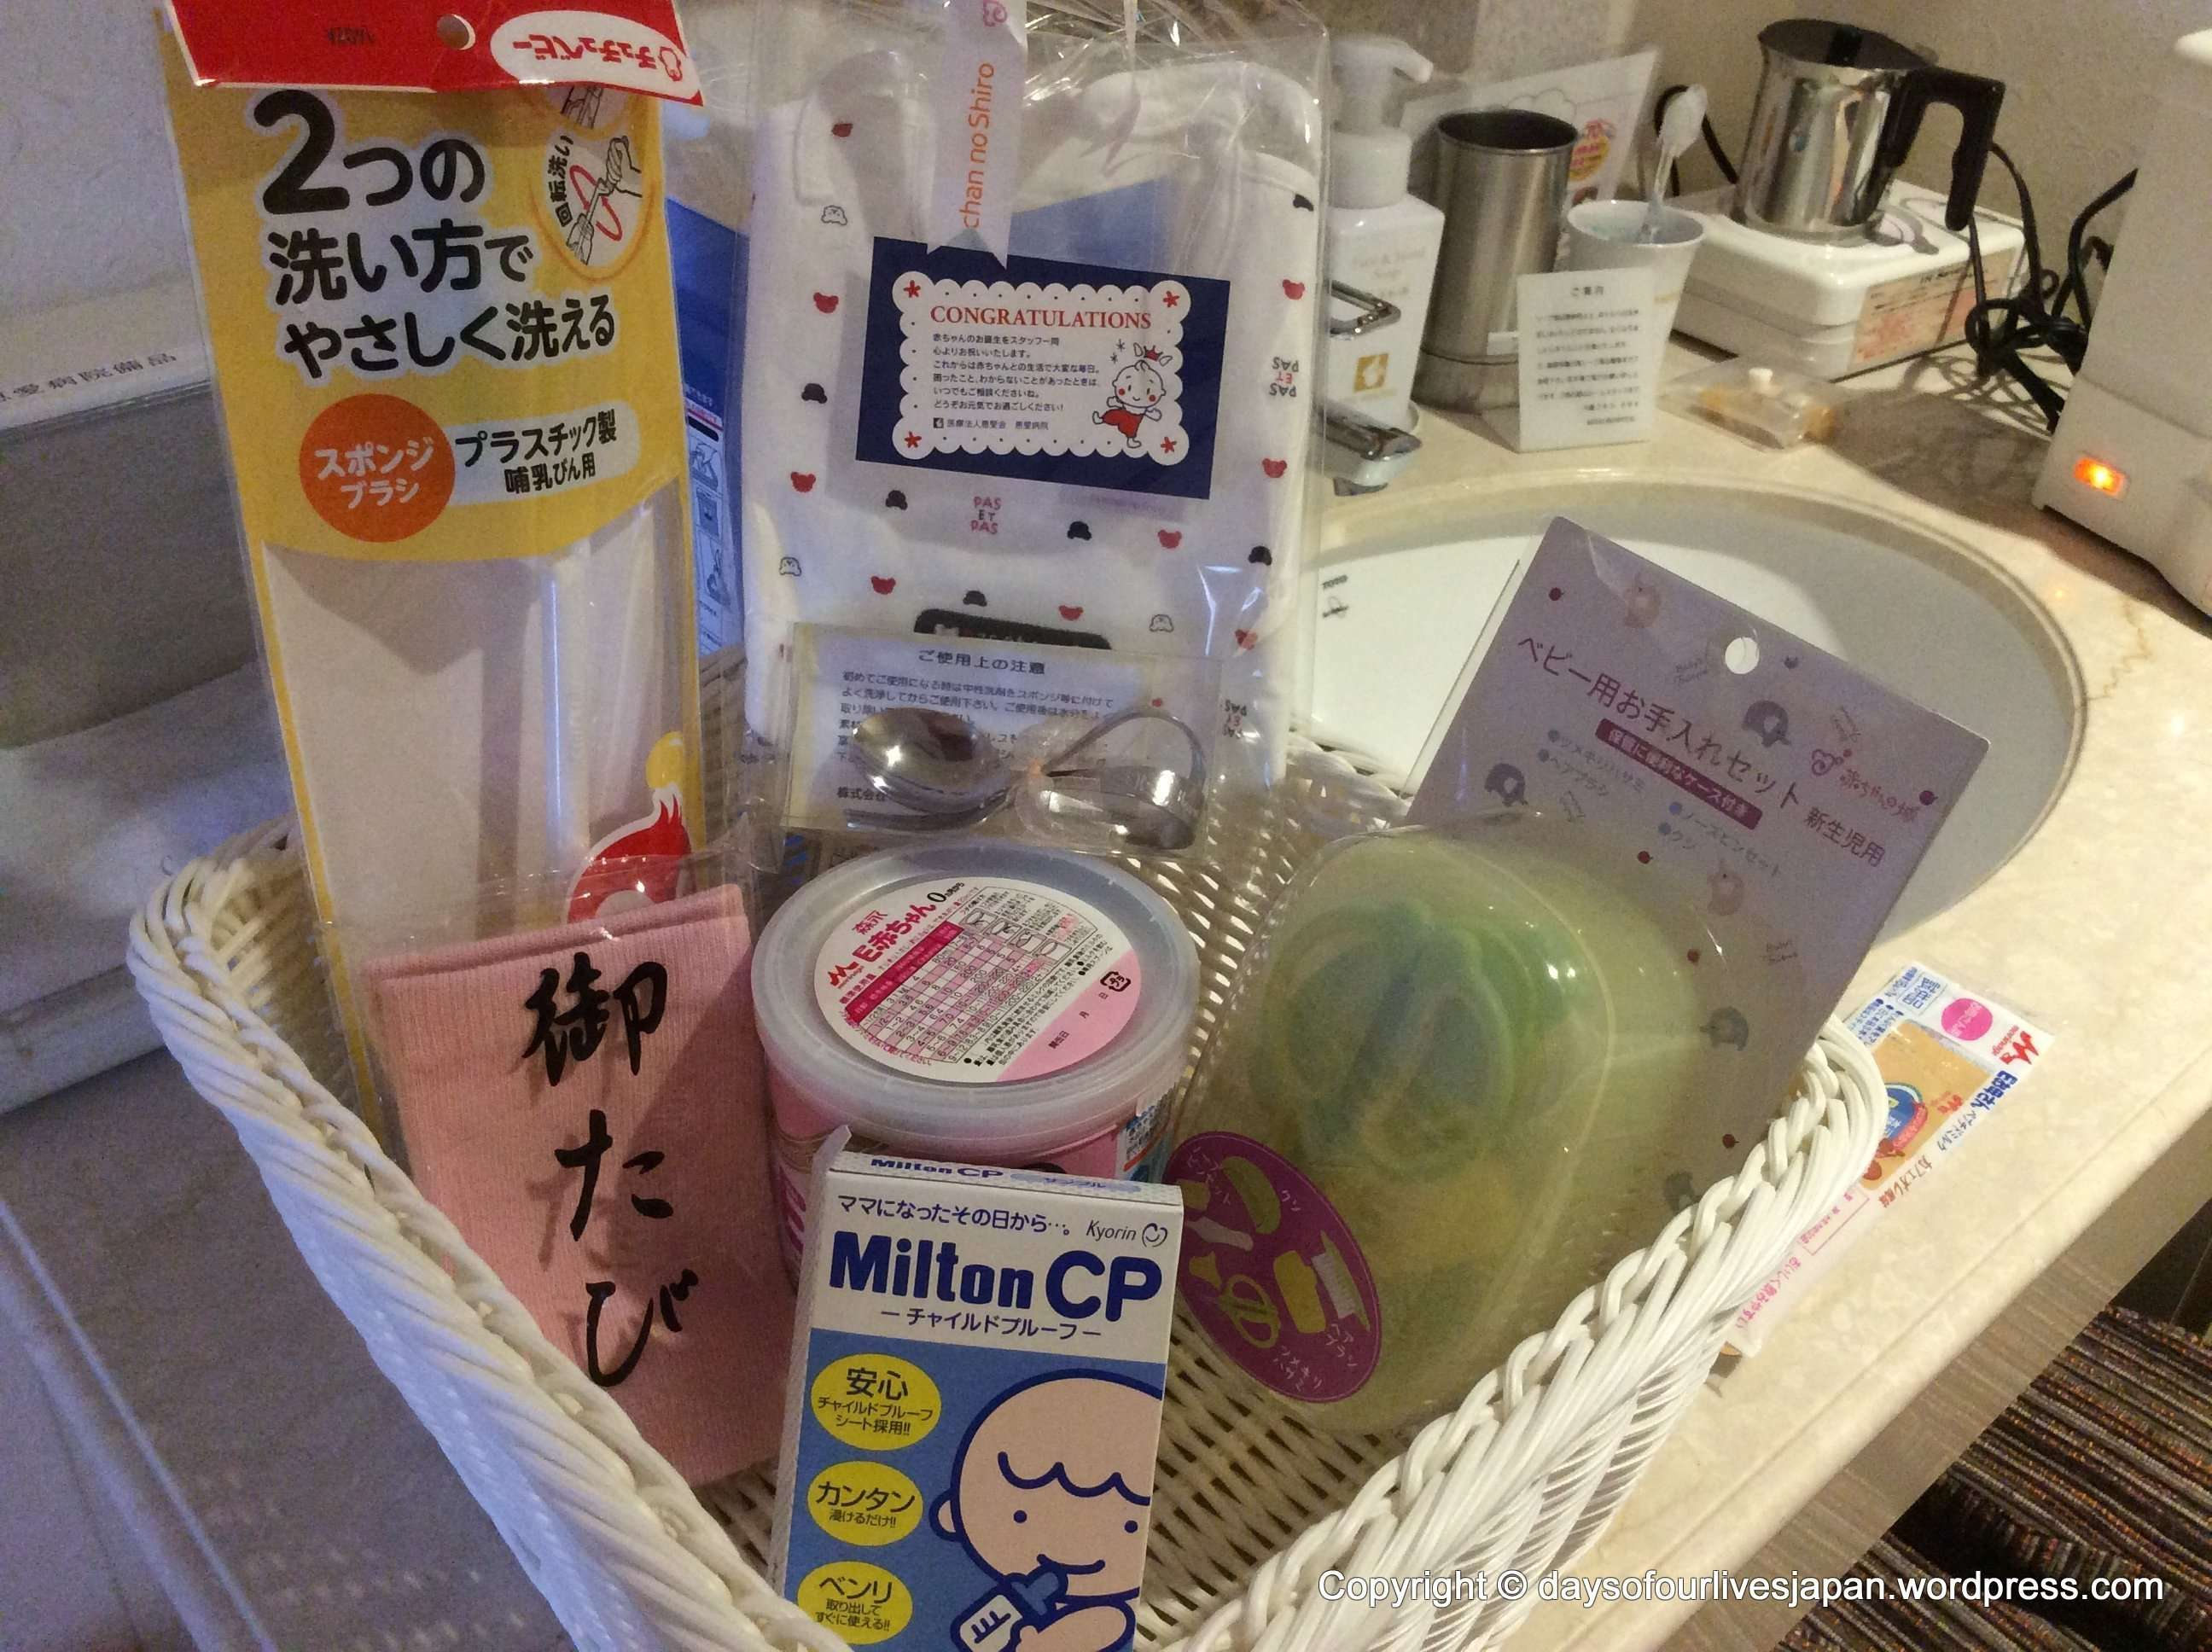 Some of the baby goods gifted from the hospital